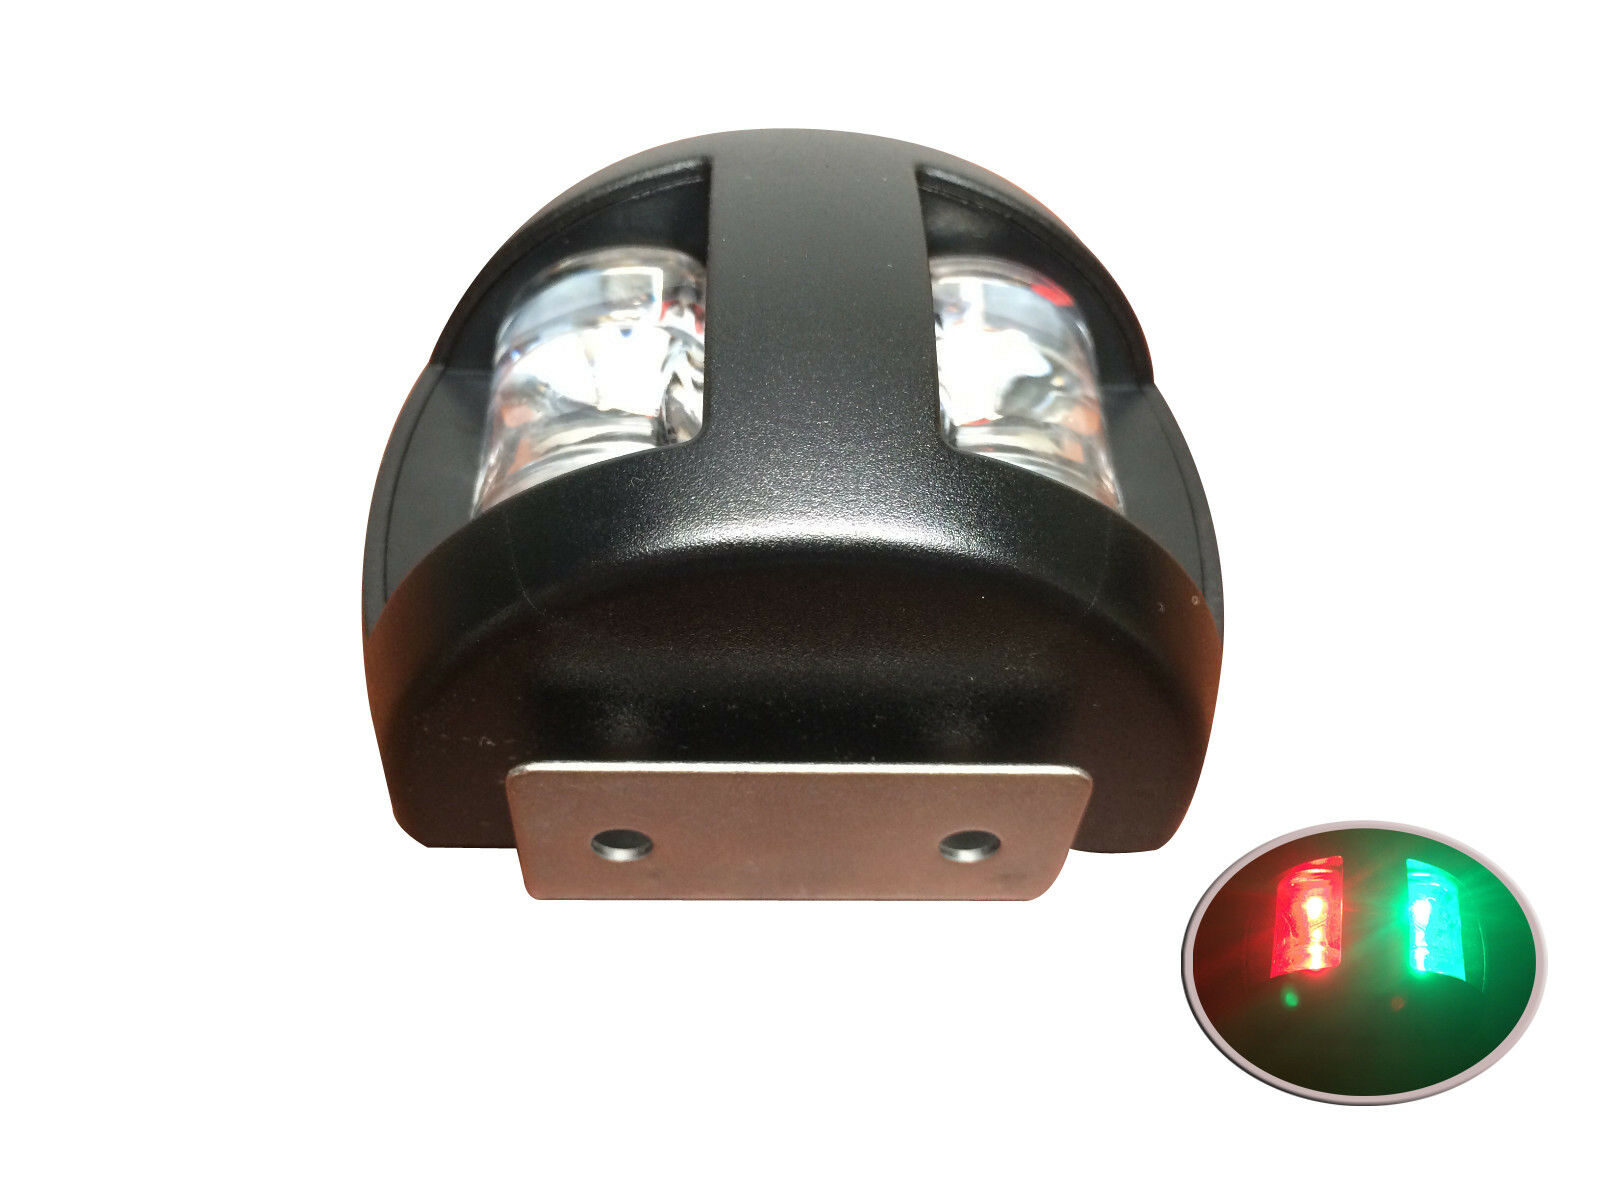 Pactrade Marine Boat Combo Side LED Bi-Color Pair Red /& Green Navigation Light USCG 2 NM ABYC A16 Approval 12v White